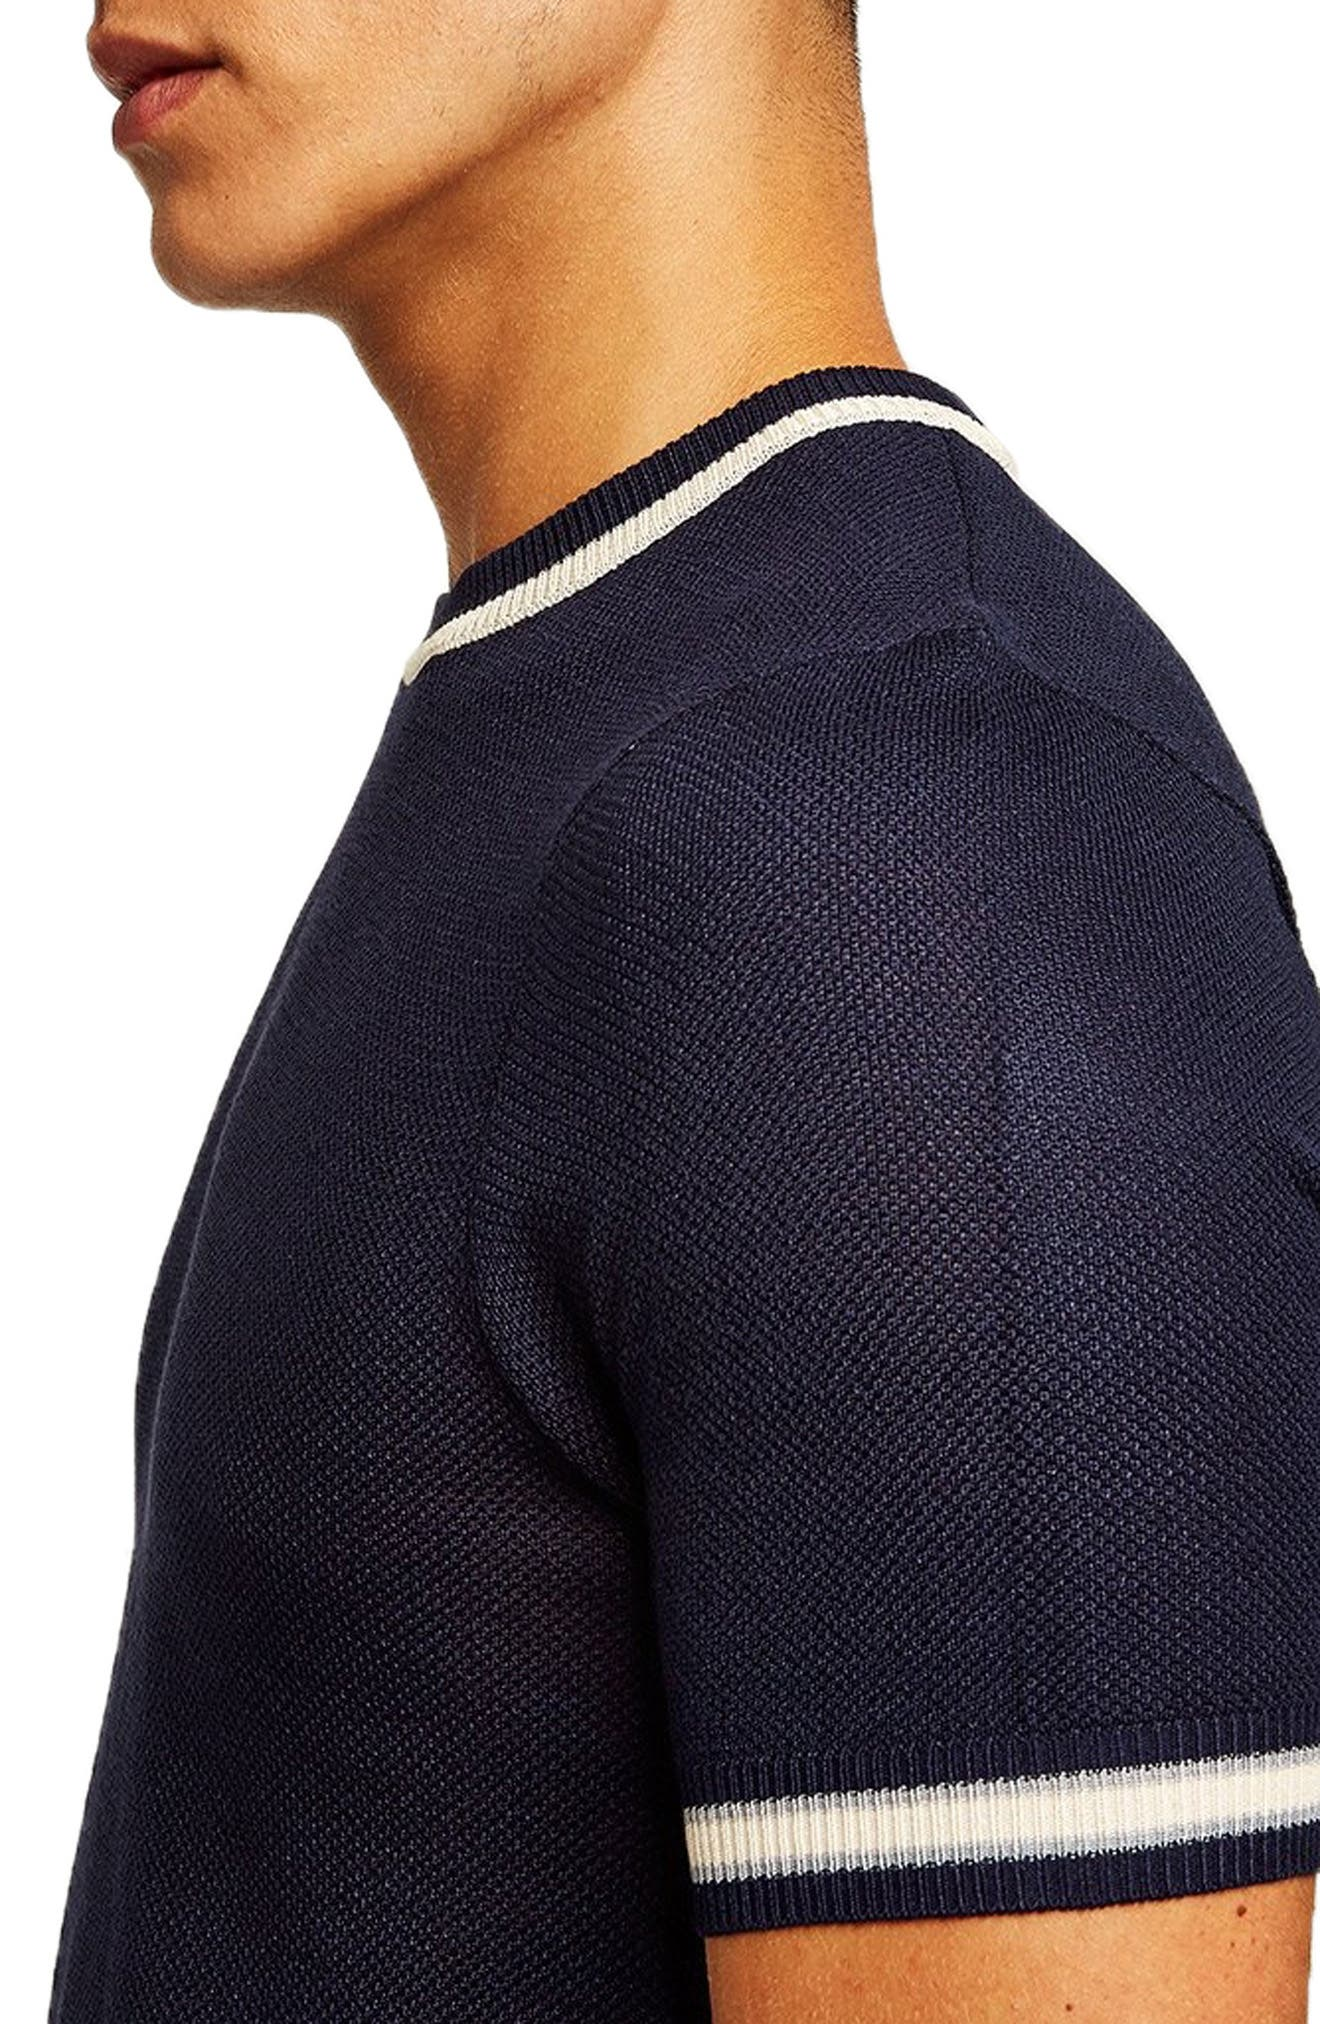 Tipping Classic Fit Short Sleeve Sweater,                             Alternate thumbnail 3, color,                             NAVY BLUE